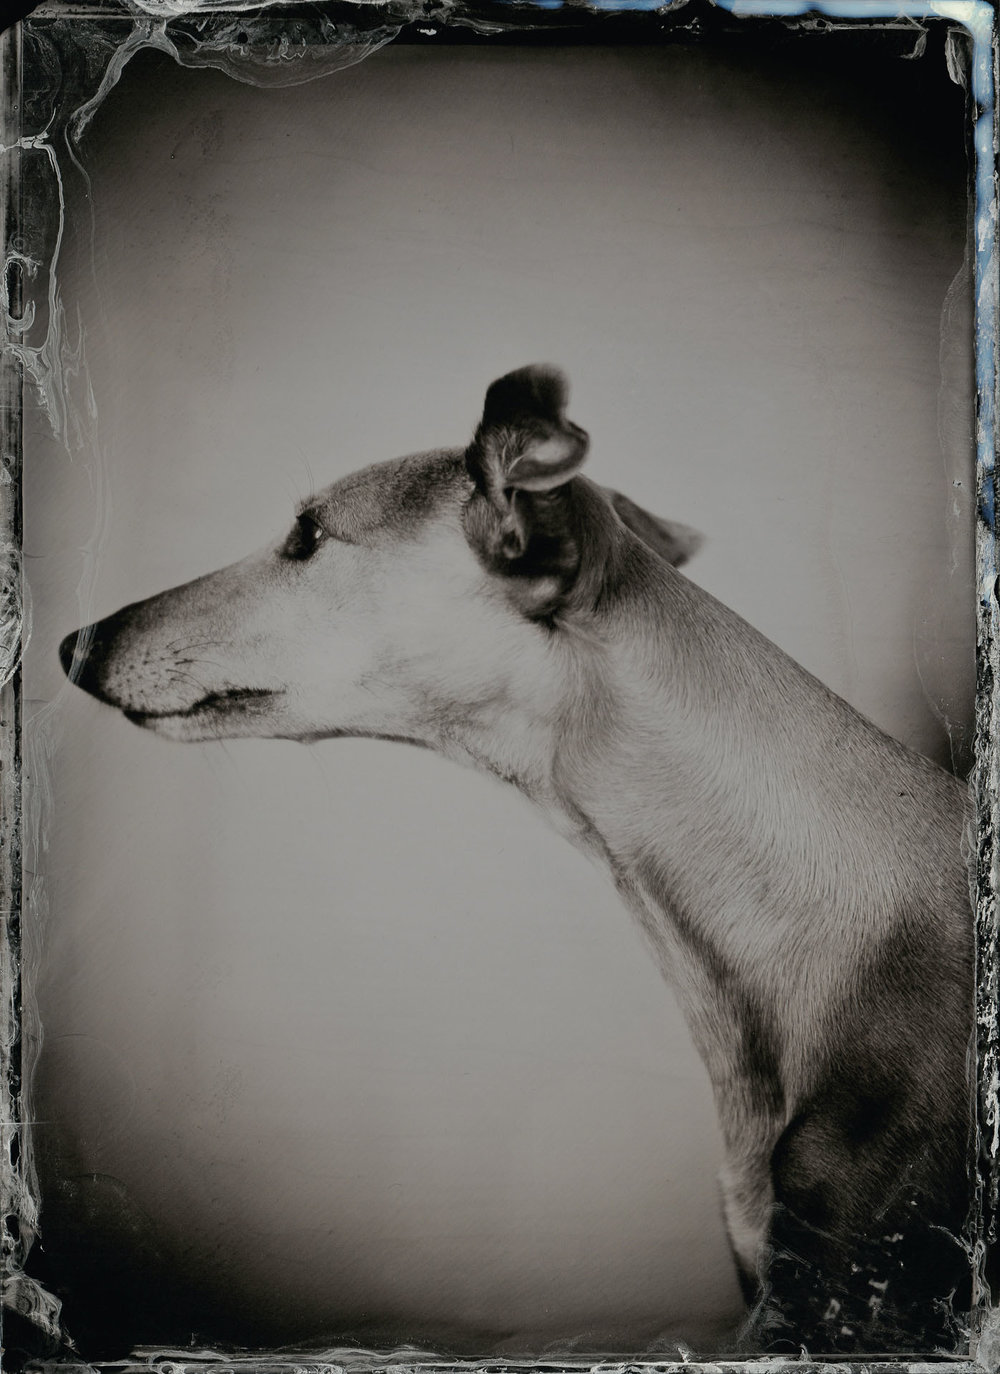 Olive (The Whippet) - By: Rikard Österlund  www.rikard.co.uk